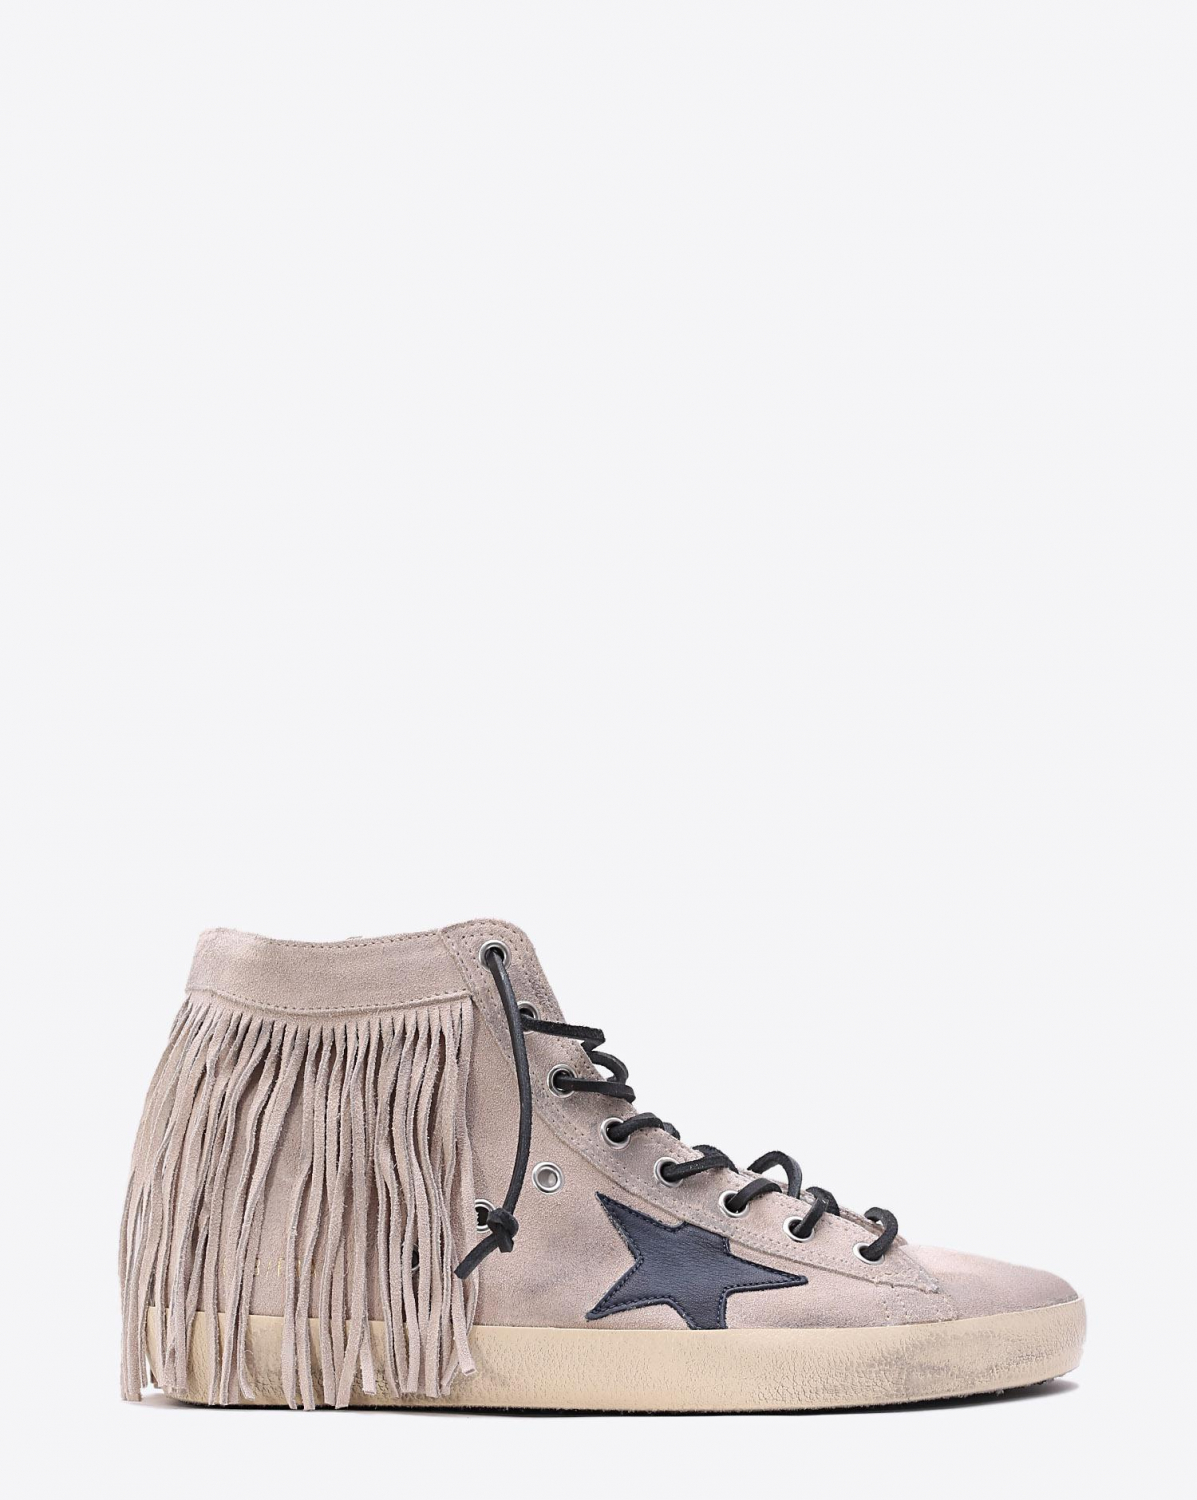 Golden Goose Woman Collection Sneakers Francy Sand suede  Sand Fringe